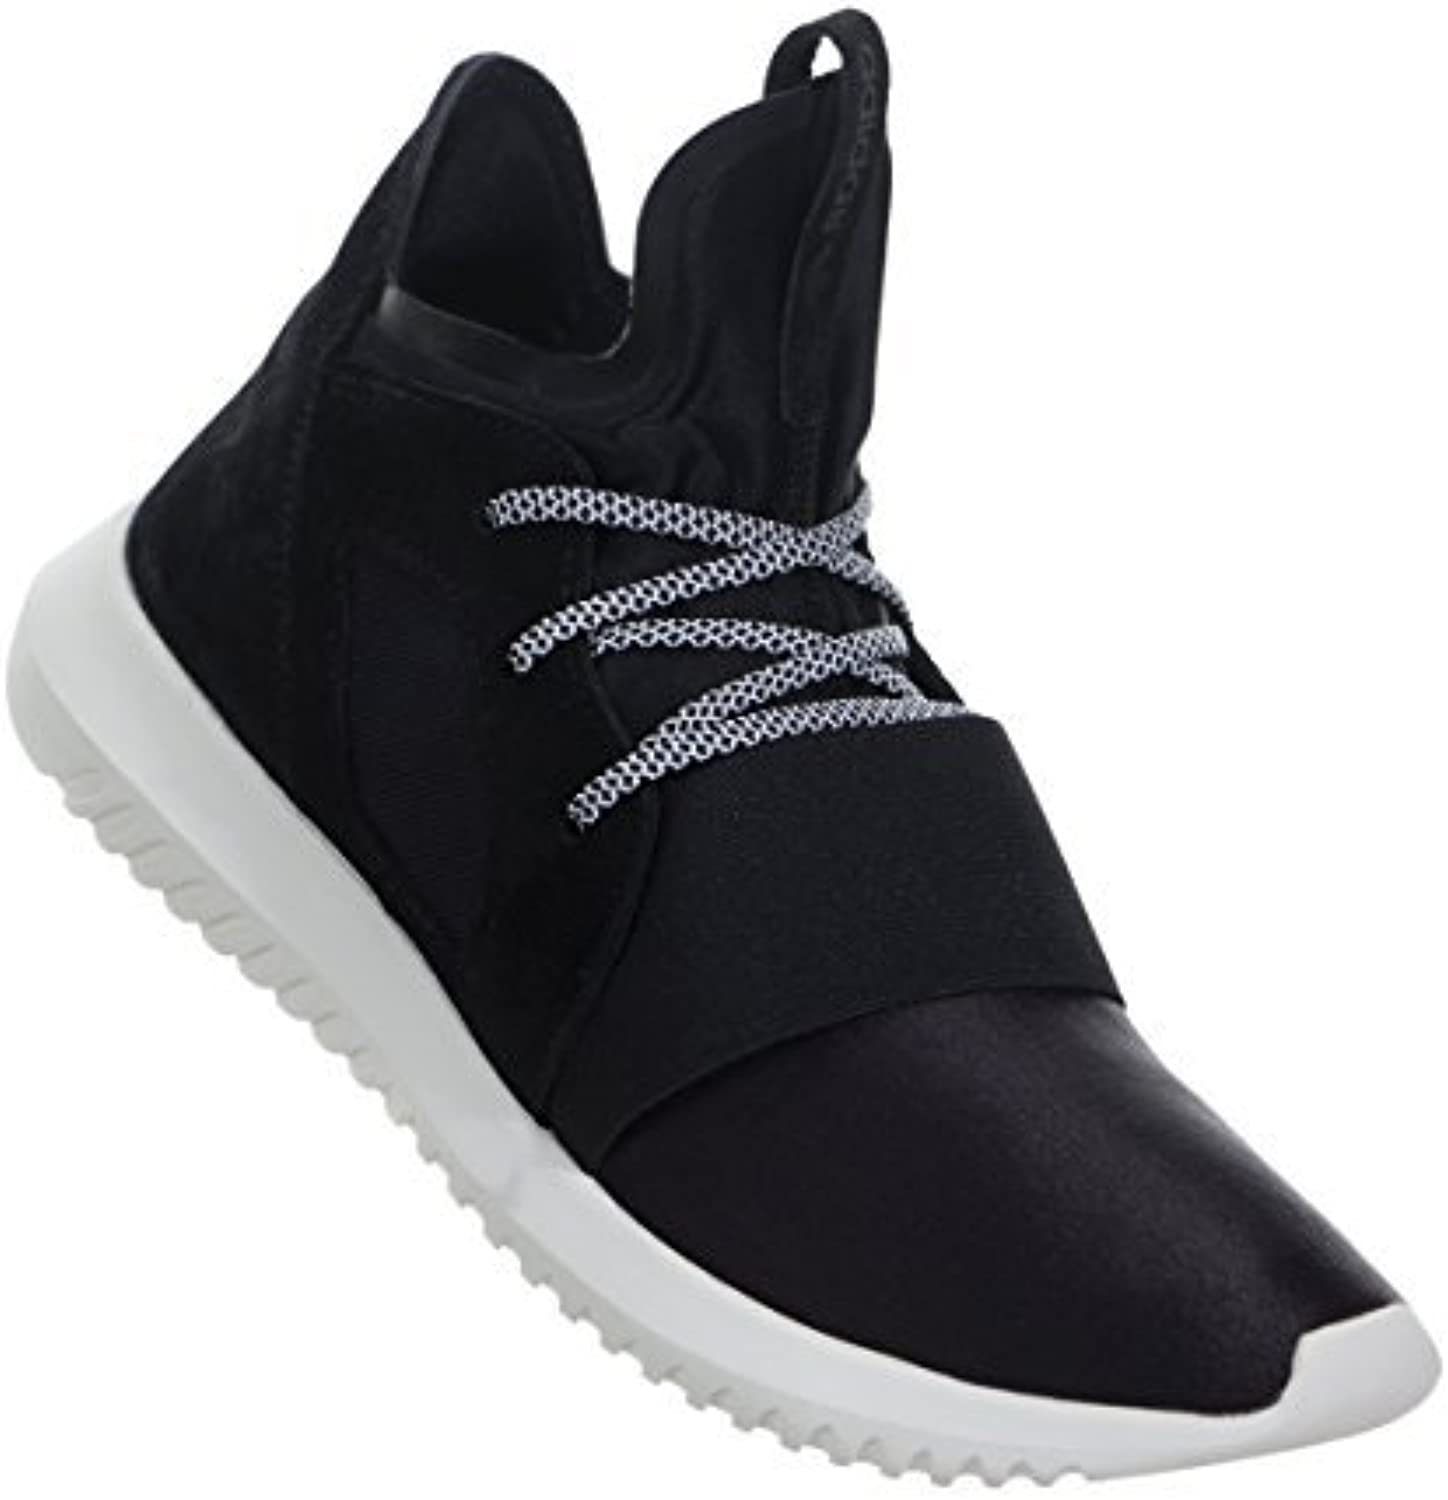 Adidas Women's Originals Tubular Defiant shoes Core Black Core Black Off White 11